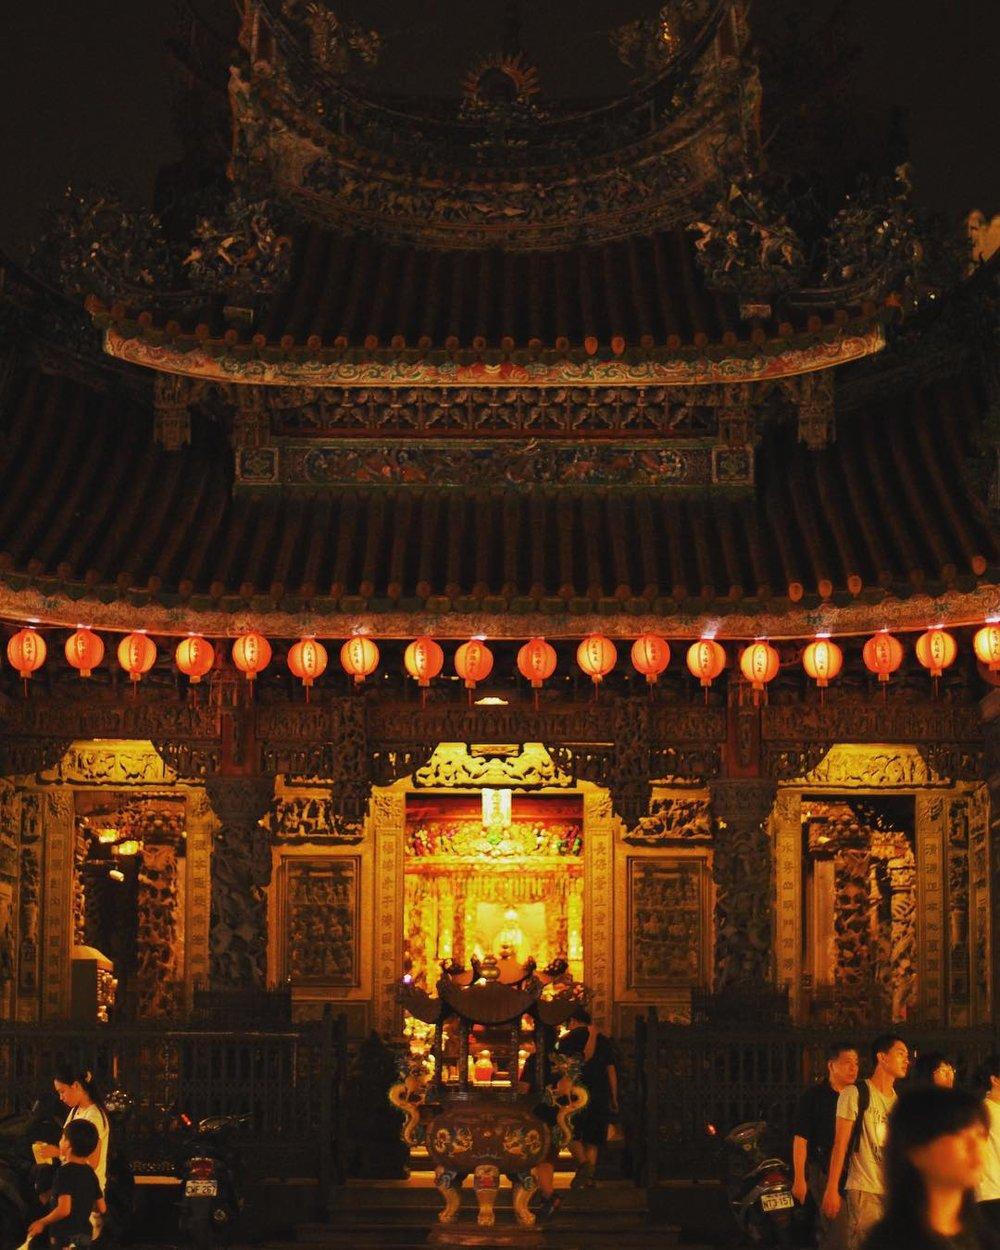 One of the places mentioned in THE ASTONISHING COLOR OF AFTER was based on the Zushi Temple along Sanxia Old Street in New Taipei. I stood in this Taoist temple for a long time, watching people toss bwabwei moon blocks into the air in search of answers to their questions. My main character ended up doing the same.